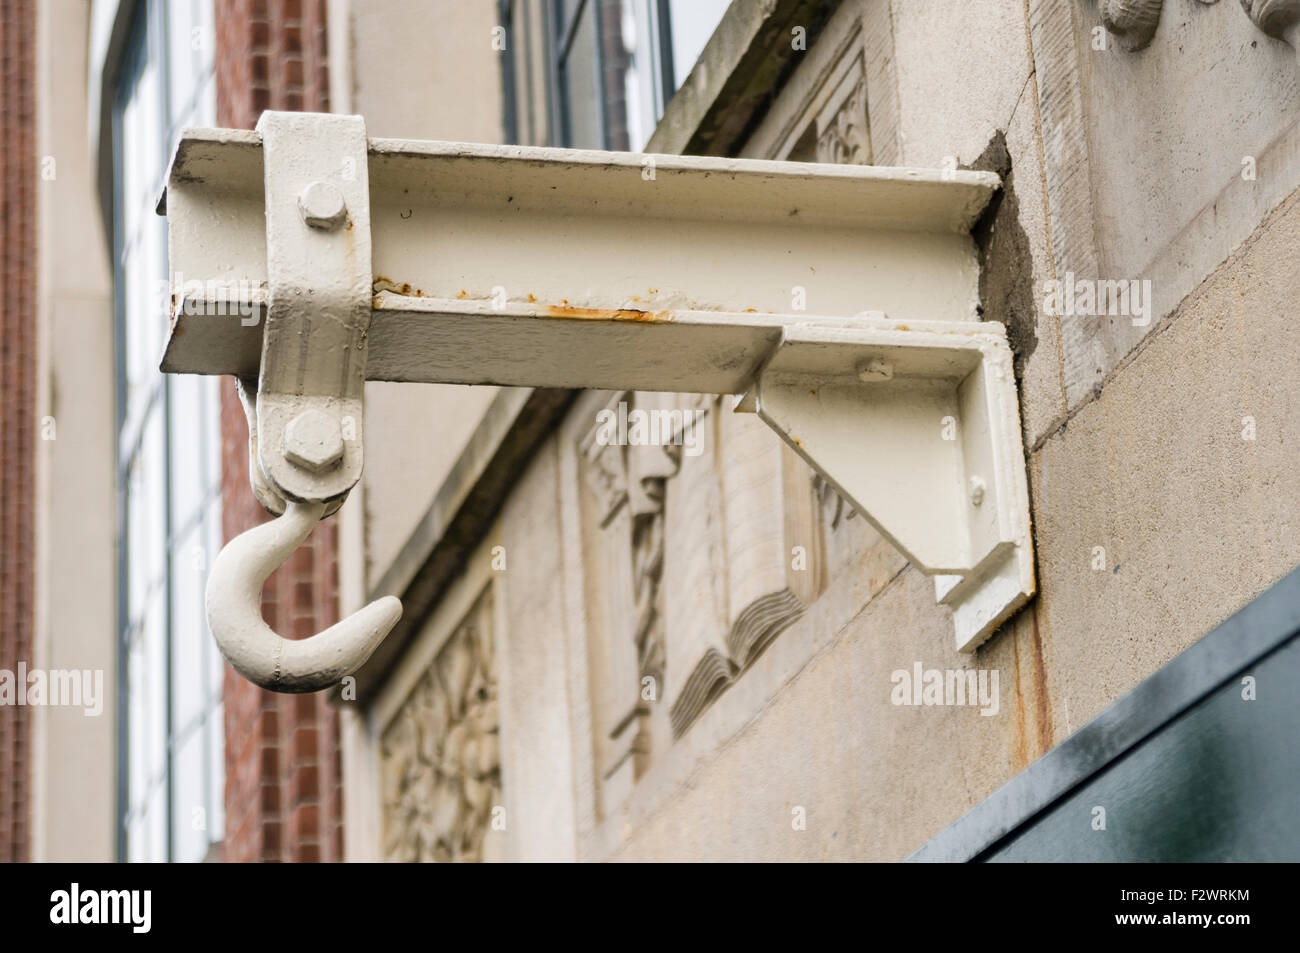 Hook at the top of a building in Amsterdam, used to get large and heavy items into the tall buildings. - Stock Image